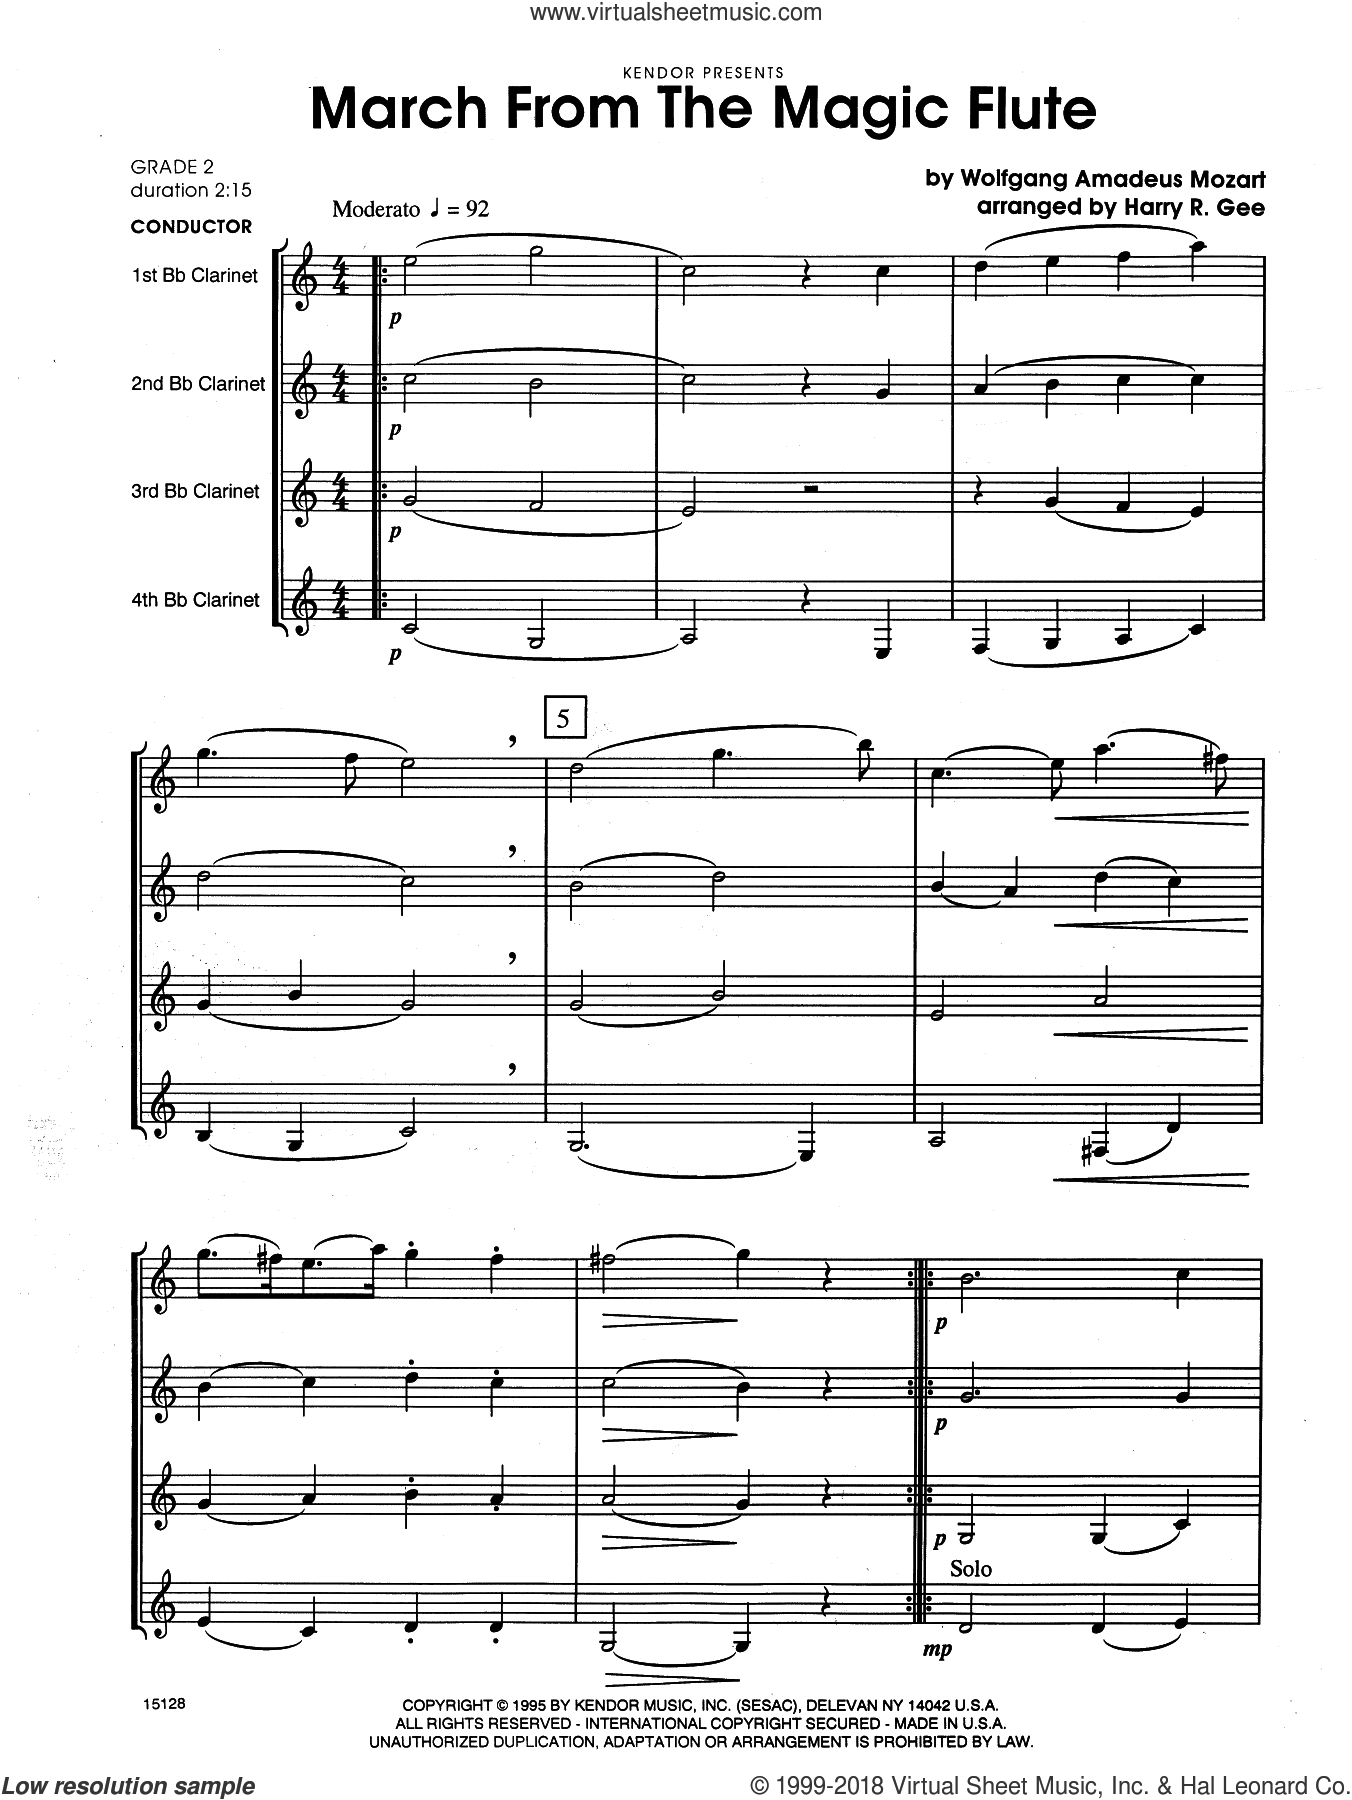 March From The Magic Flute (COMPLETE) sheet music for four clarinets by Wolfgang Amadeus Mozart and Harry Gee, classical score, intermediate skill level